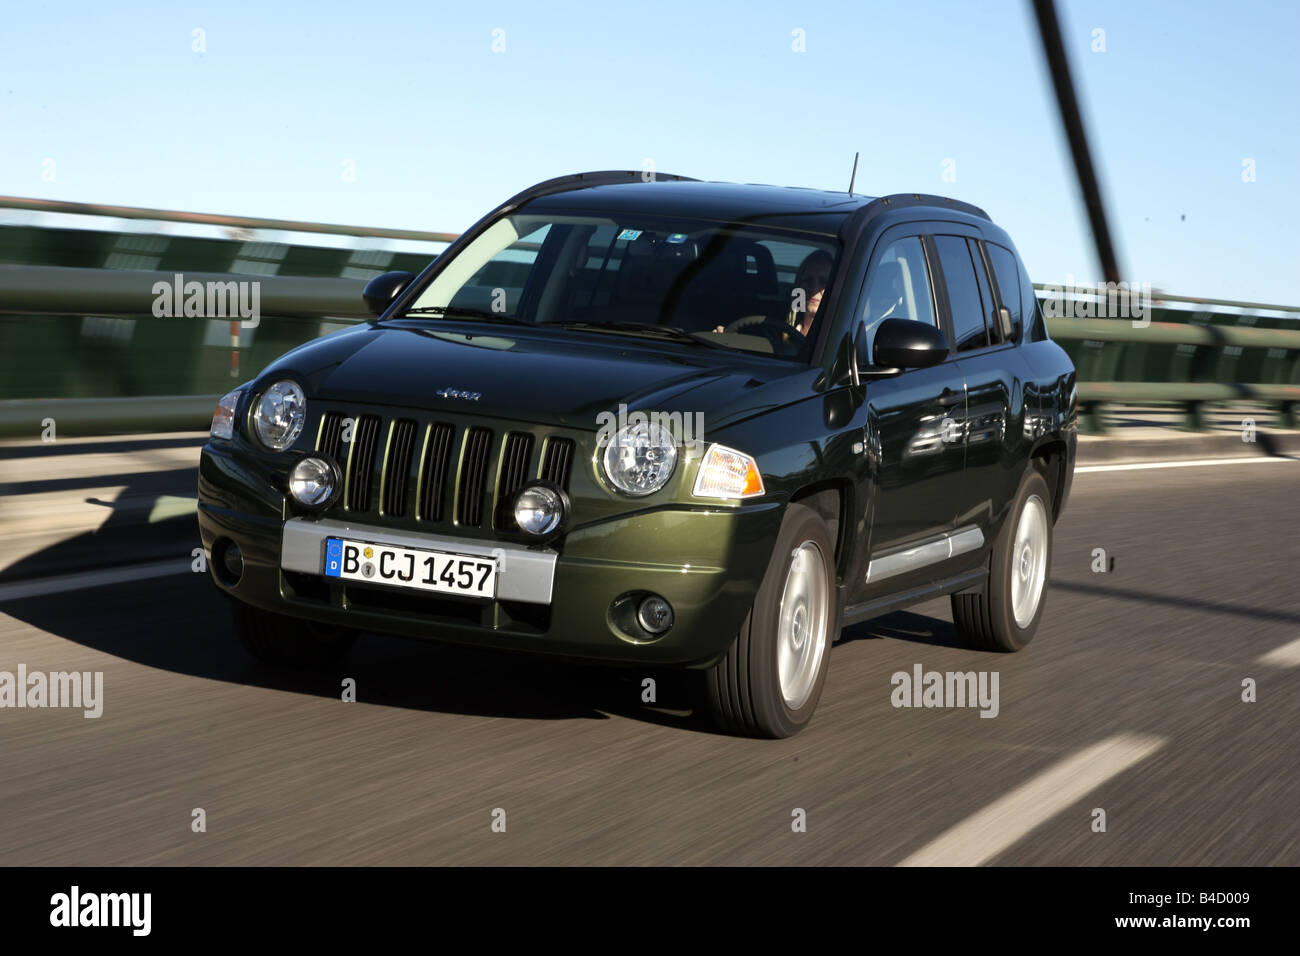 Jeep Compass 2.0 CRD Limited, model year 2007-, green, driving, diagonal from the front, frontal view, country road - Stock Image